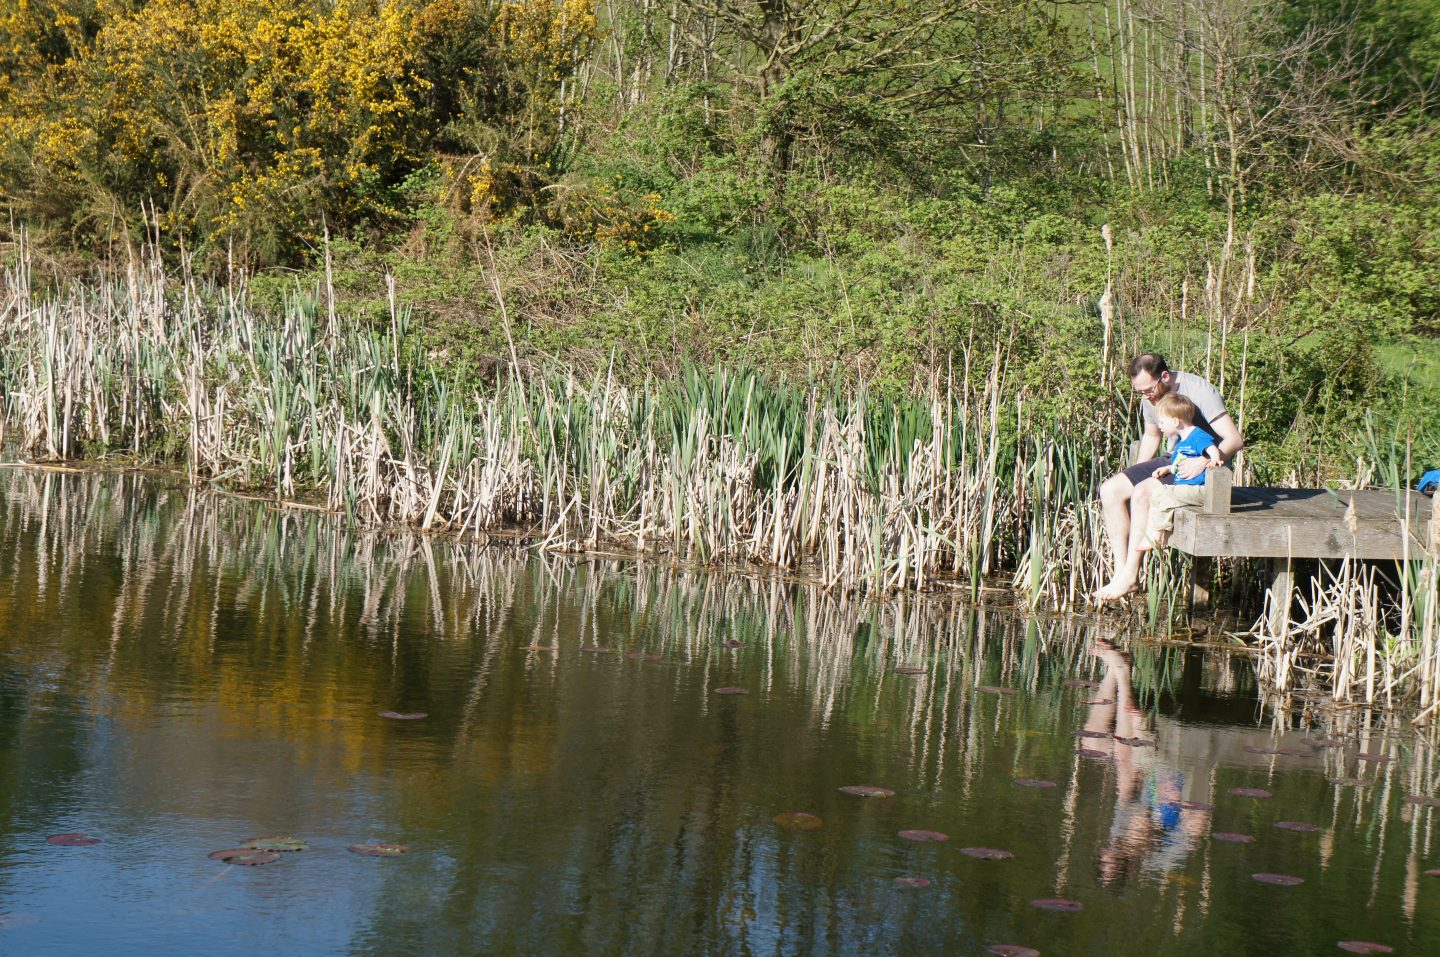 Ed and Nathan by the lake at Gladwins